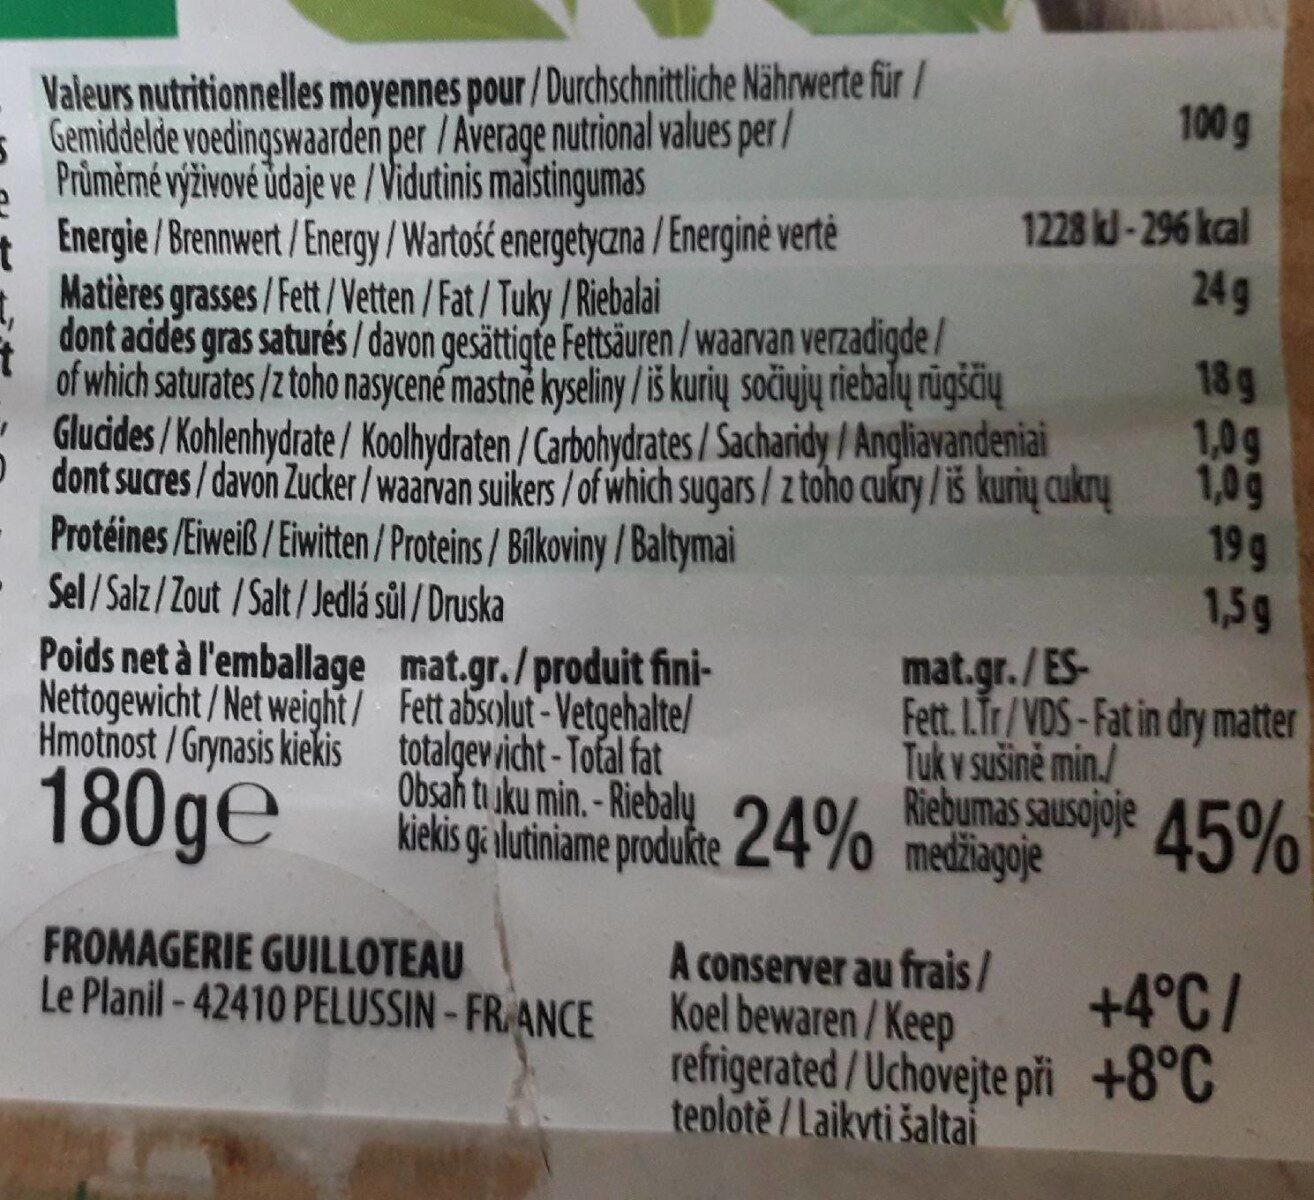 Bûche de chèvre fondante - Nutrition facts - fr